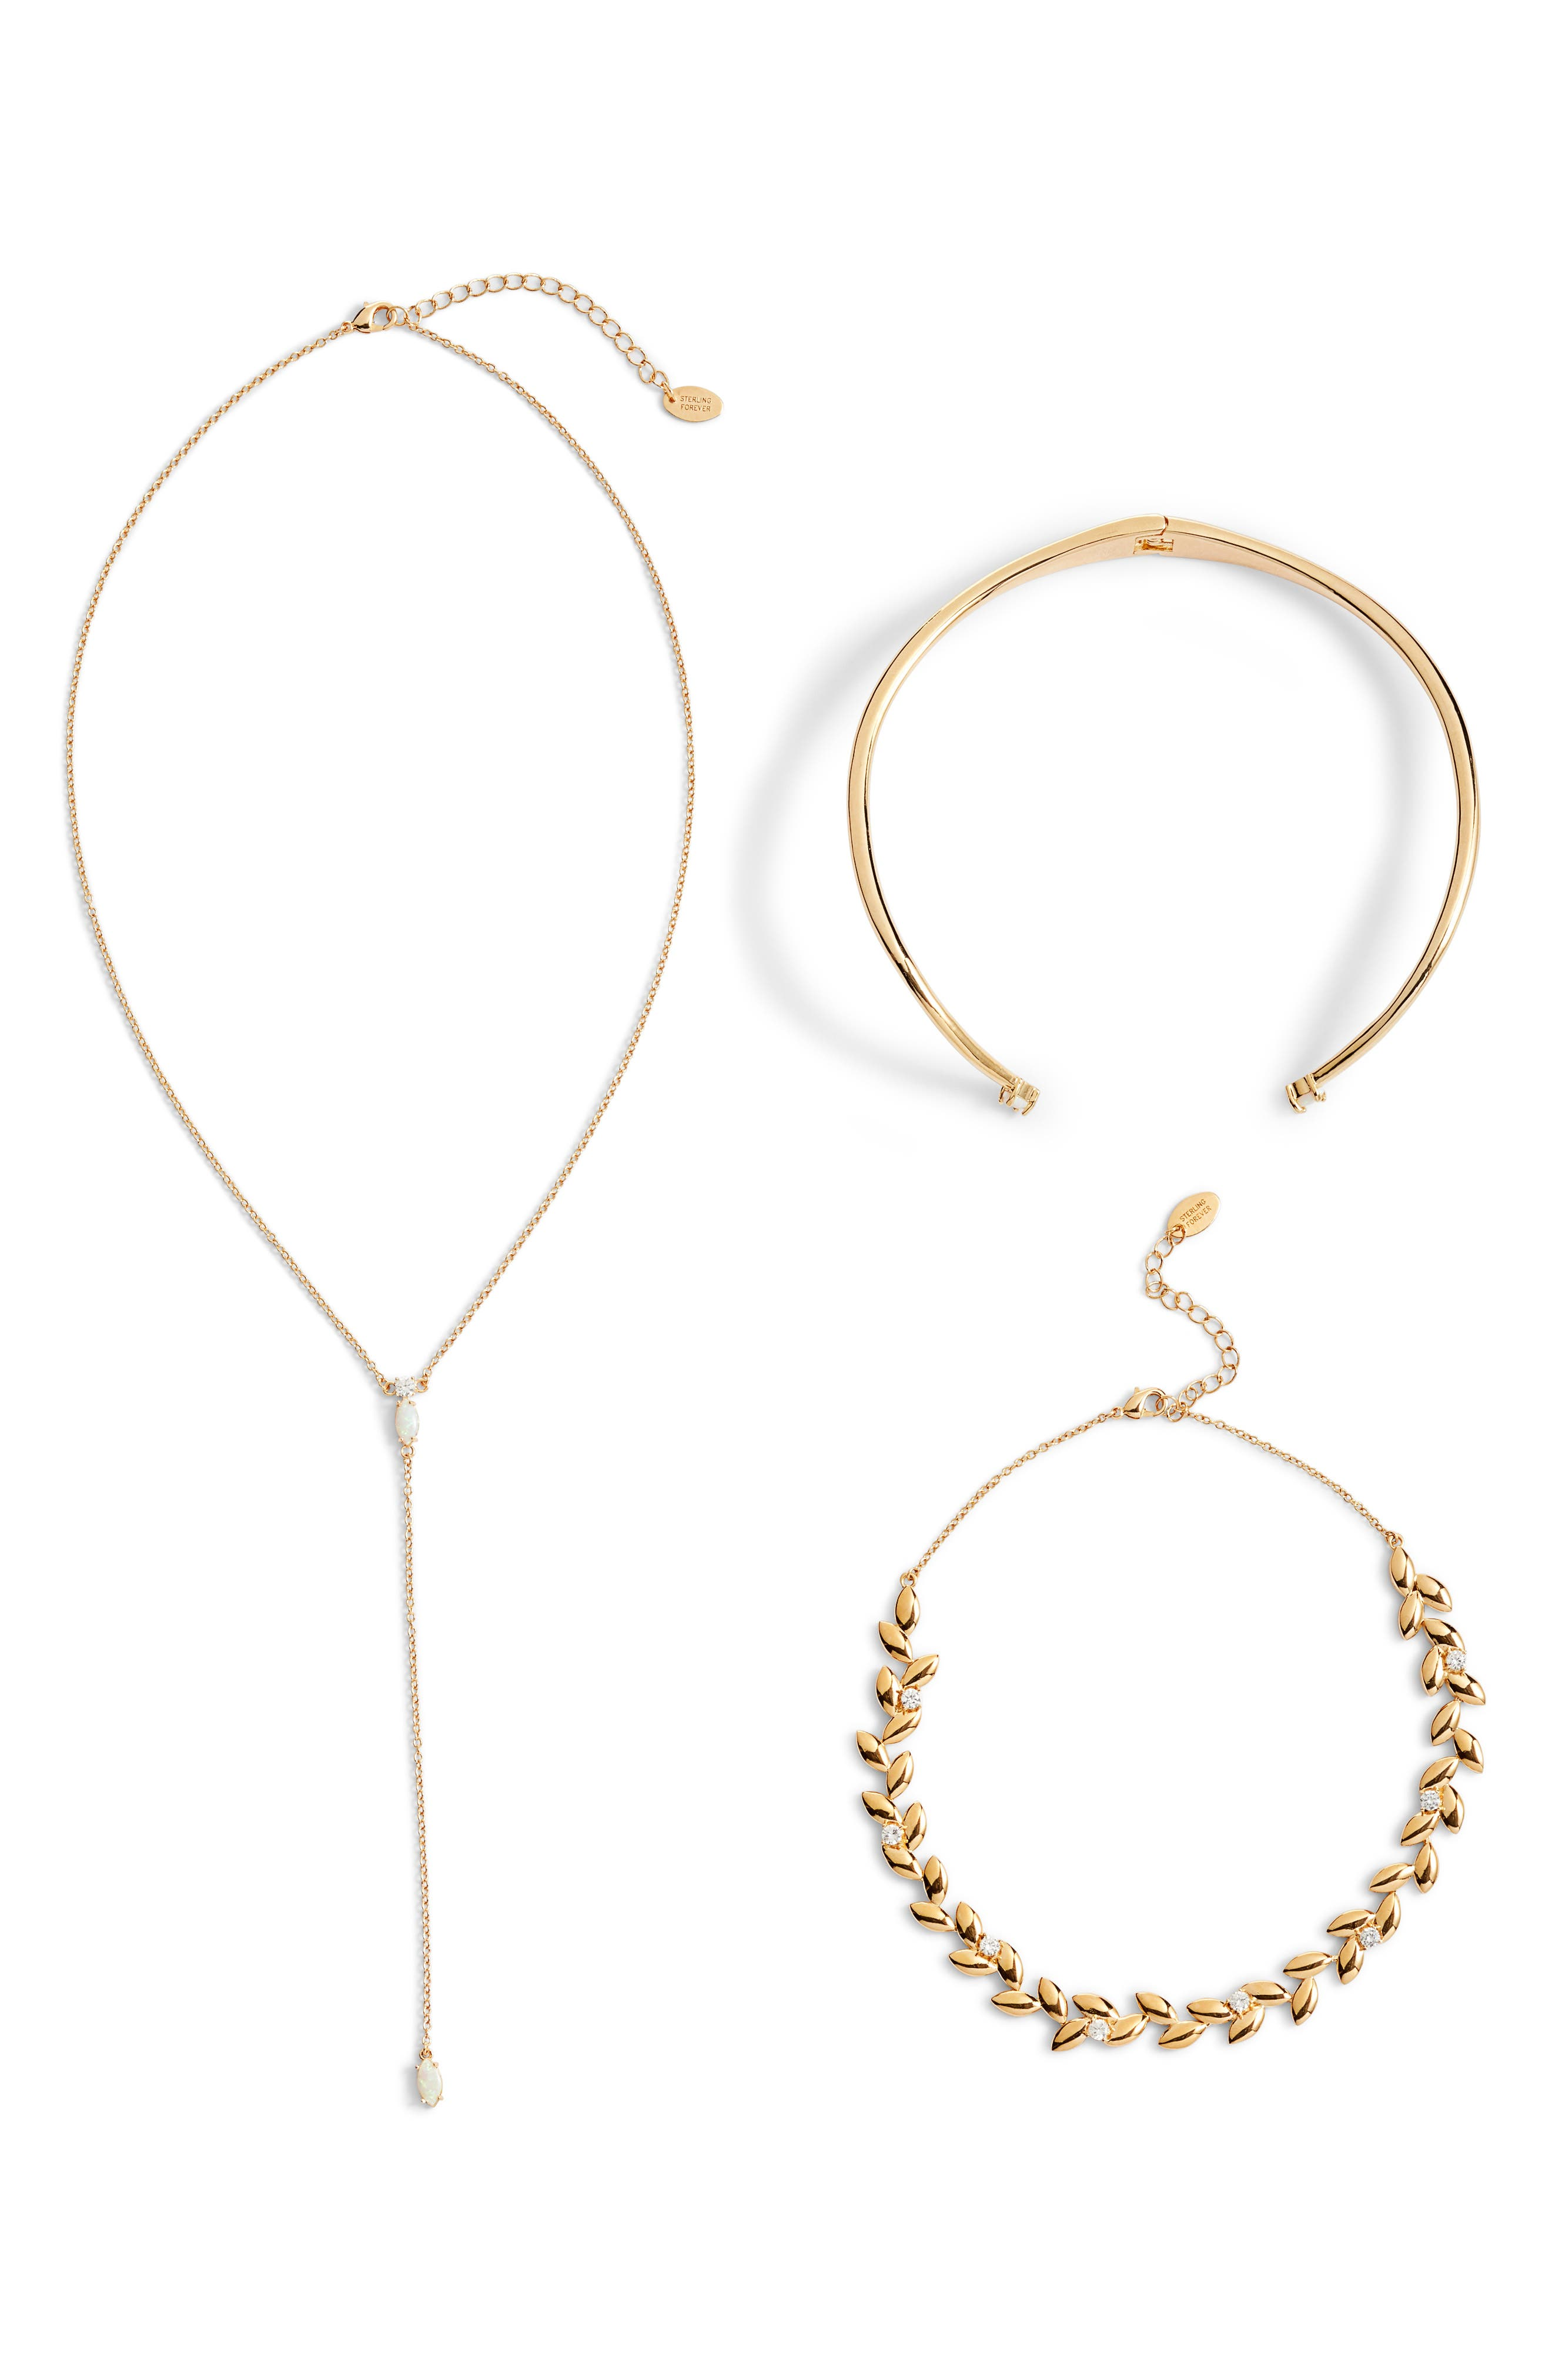 Hearts on Fire Set of 2 Chokers & Lariat Necklace,                             Main thumbnail 1, color,                             GOLD